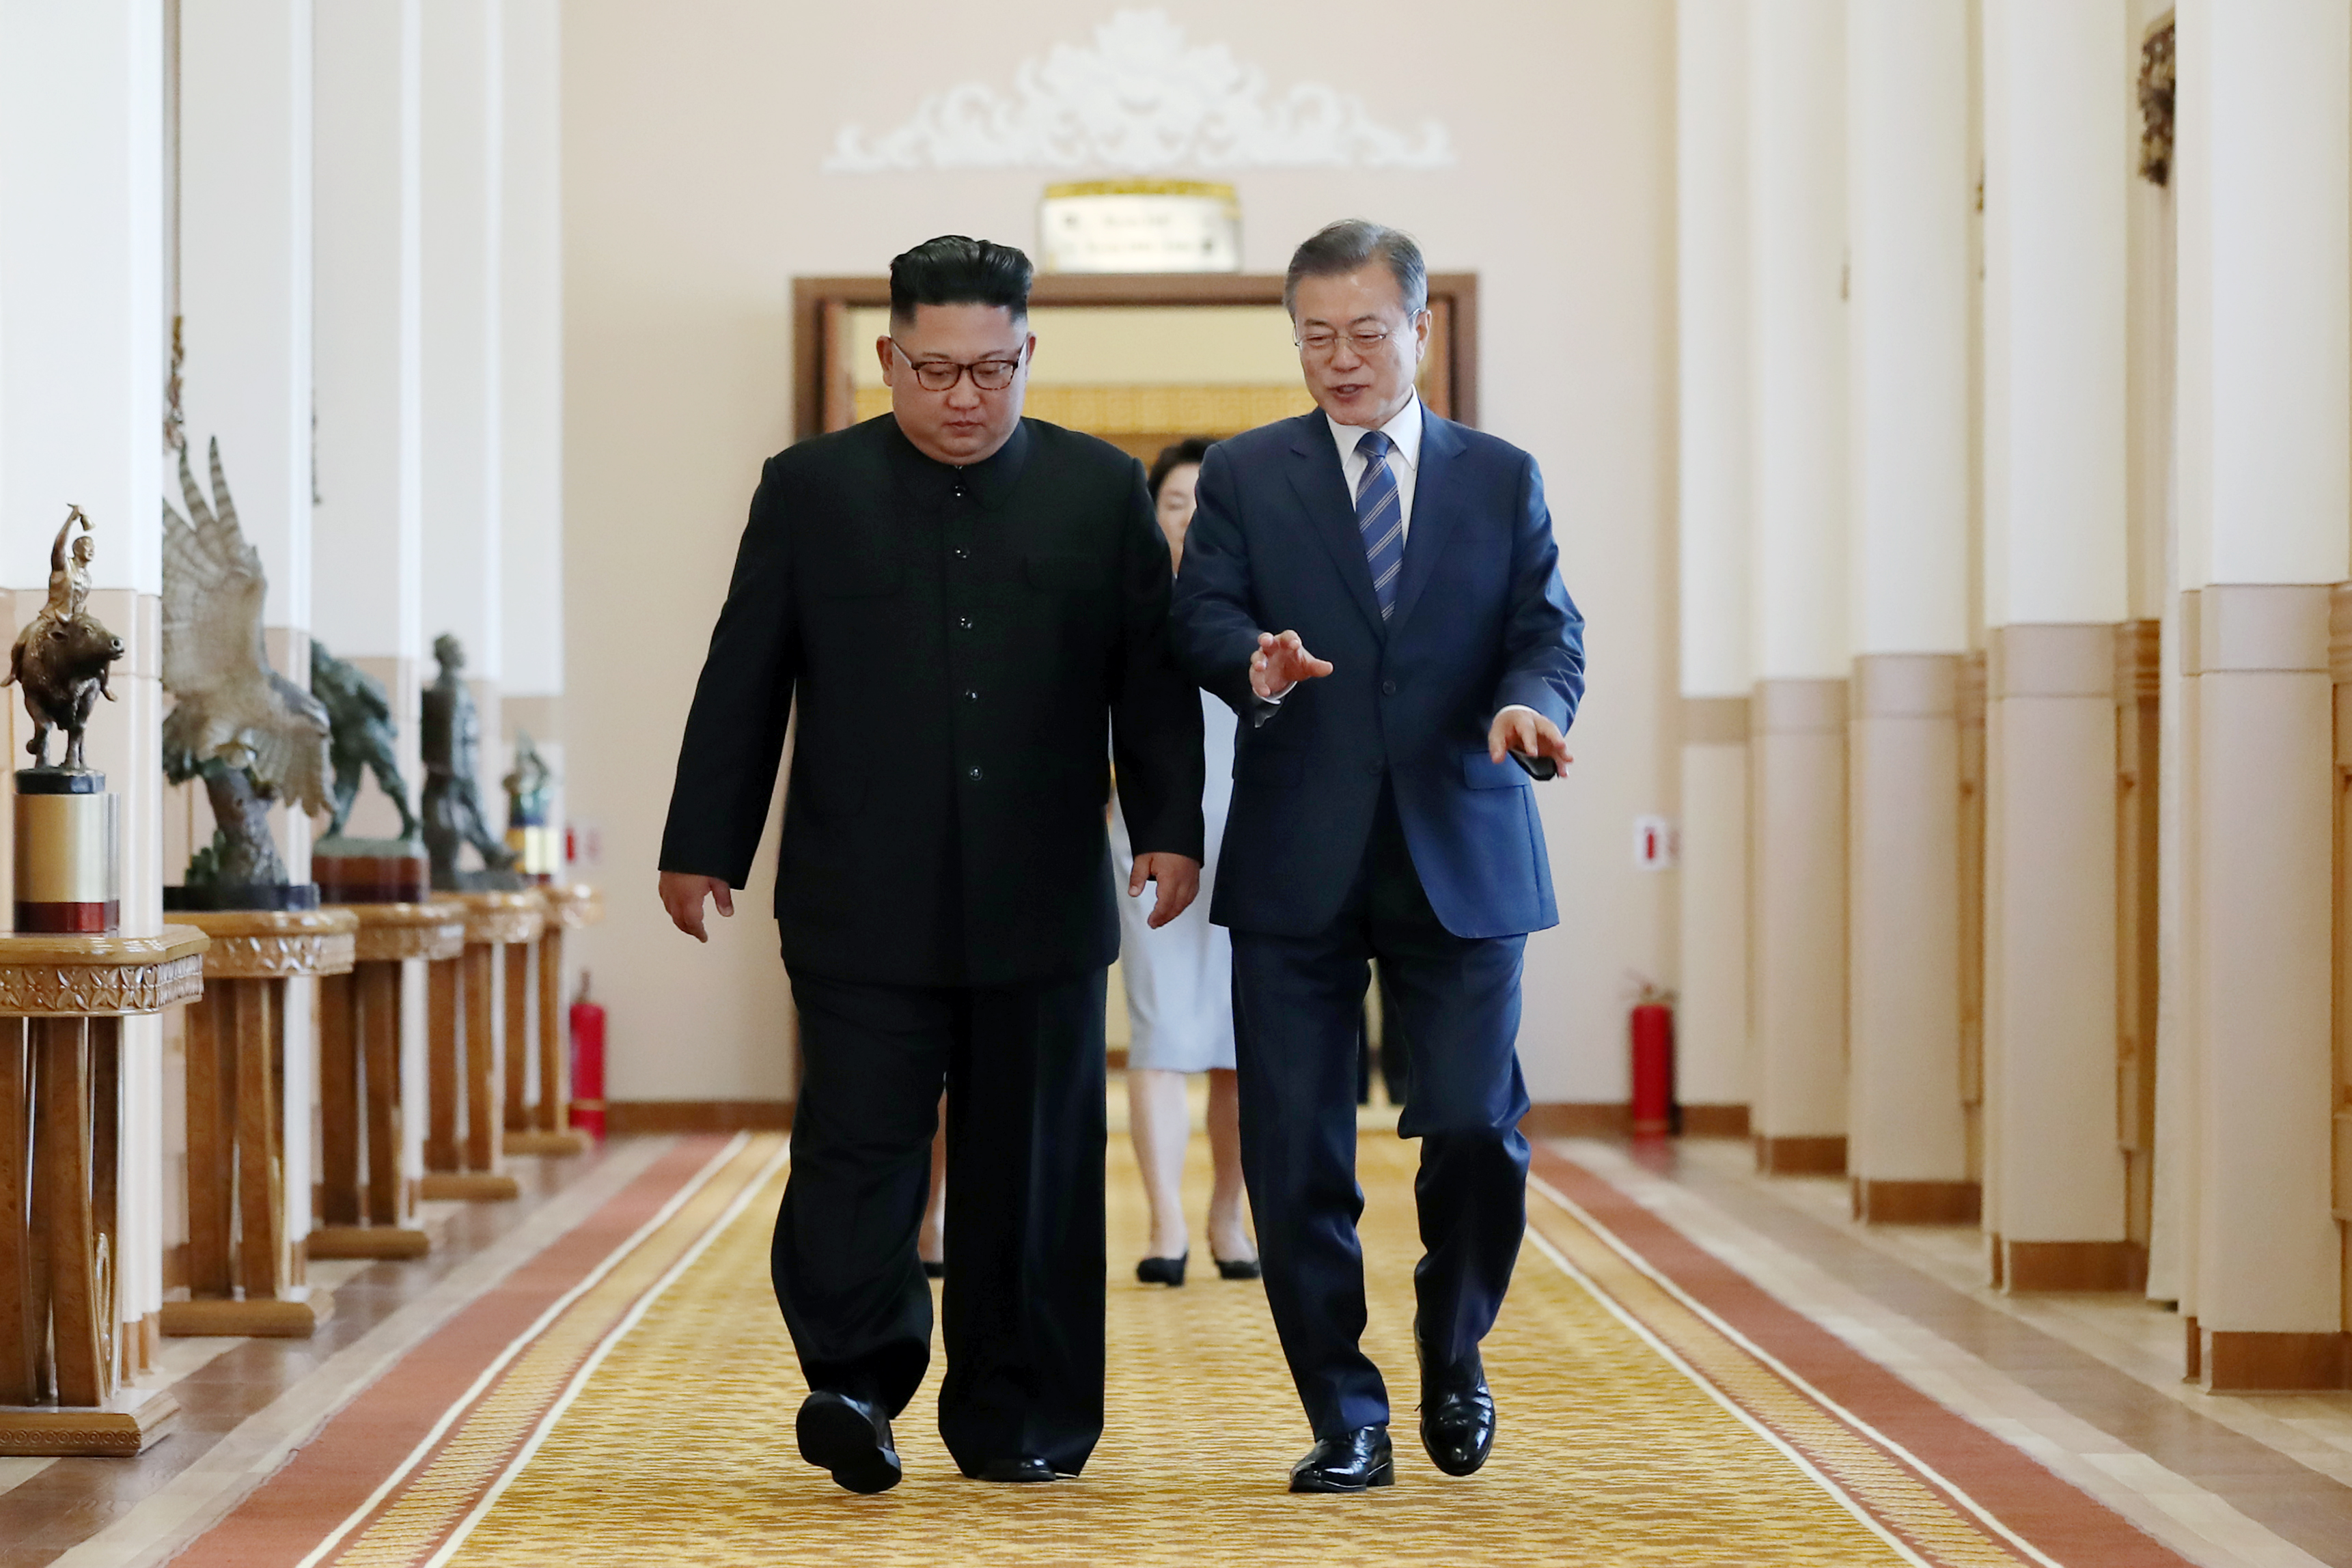 South Korean President Moon Jae-in (R) walks with North Korean leader Kim Jong Un (L) before their meeting at Paekhwawon State Guesthouse on September 19, 2018 in Pyongyang, North Korea. Kim and Moon meet for the Inter-Korean summit talks after the 1945 division of the peninsula, and will discuss ways to denuclearize the Korean Peninsula. (Getty Images)